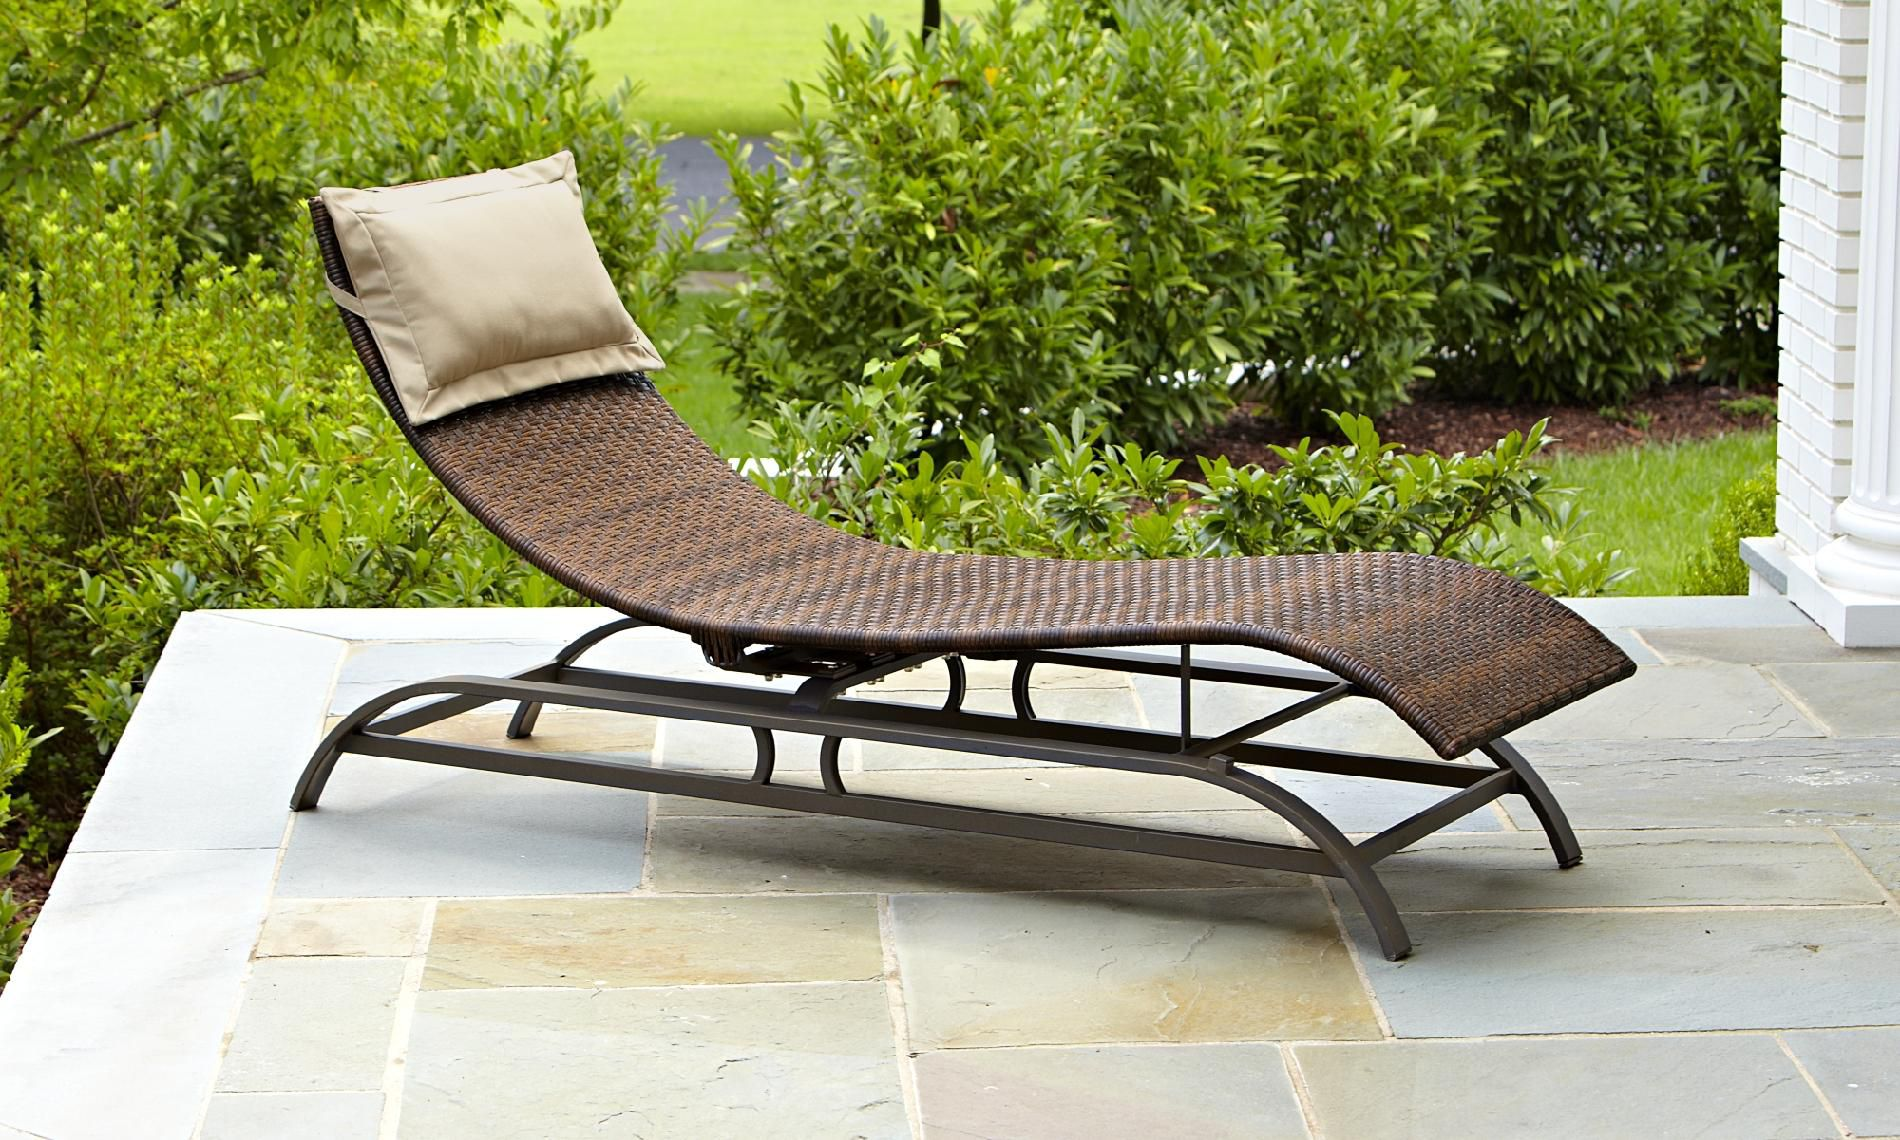 Polyrattan Outdoor-Loungemöbel